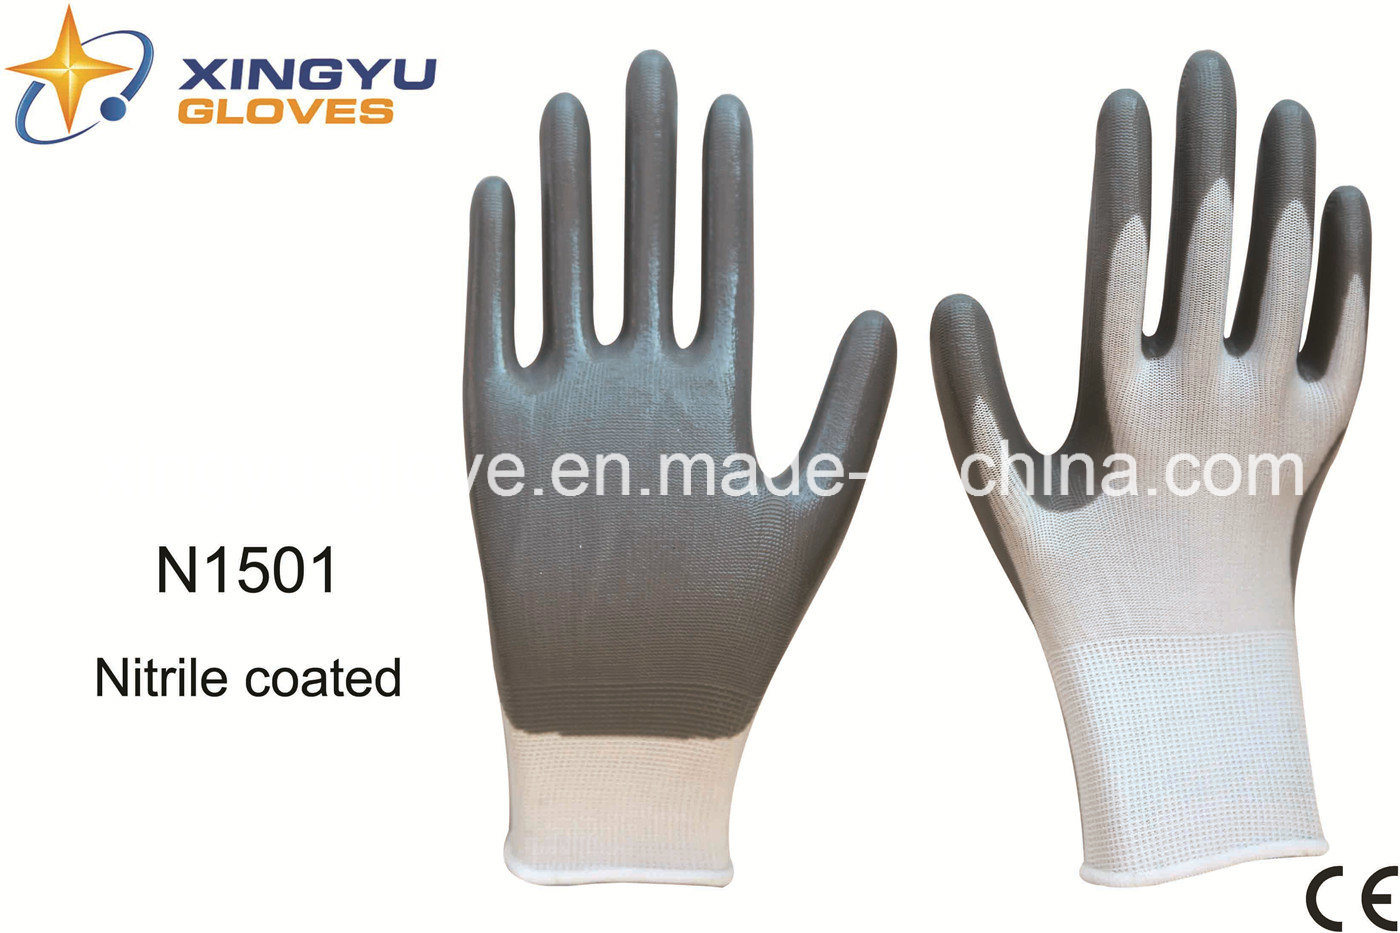 Polyester Shell Nitrile Coated Safety Work Gloves (N1501)